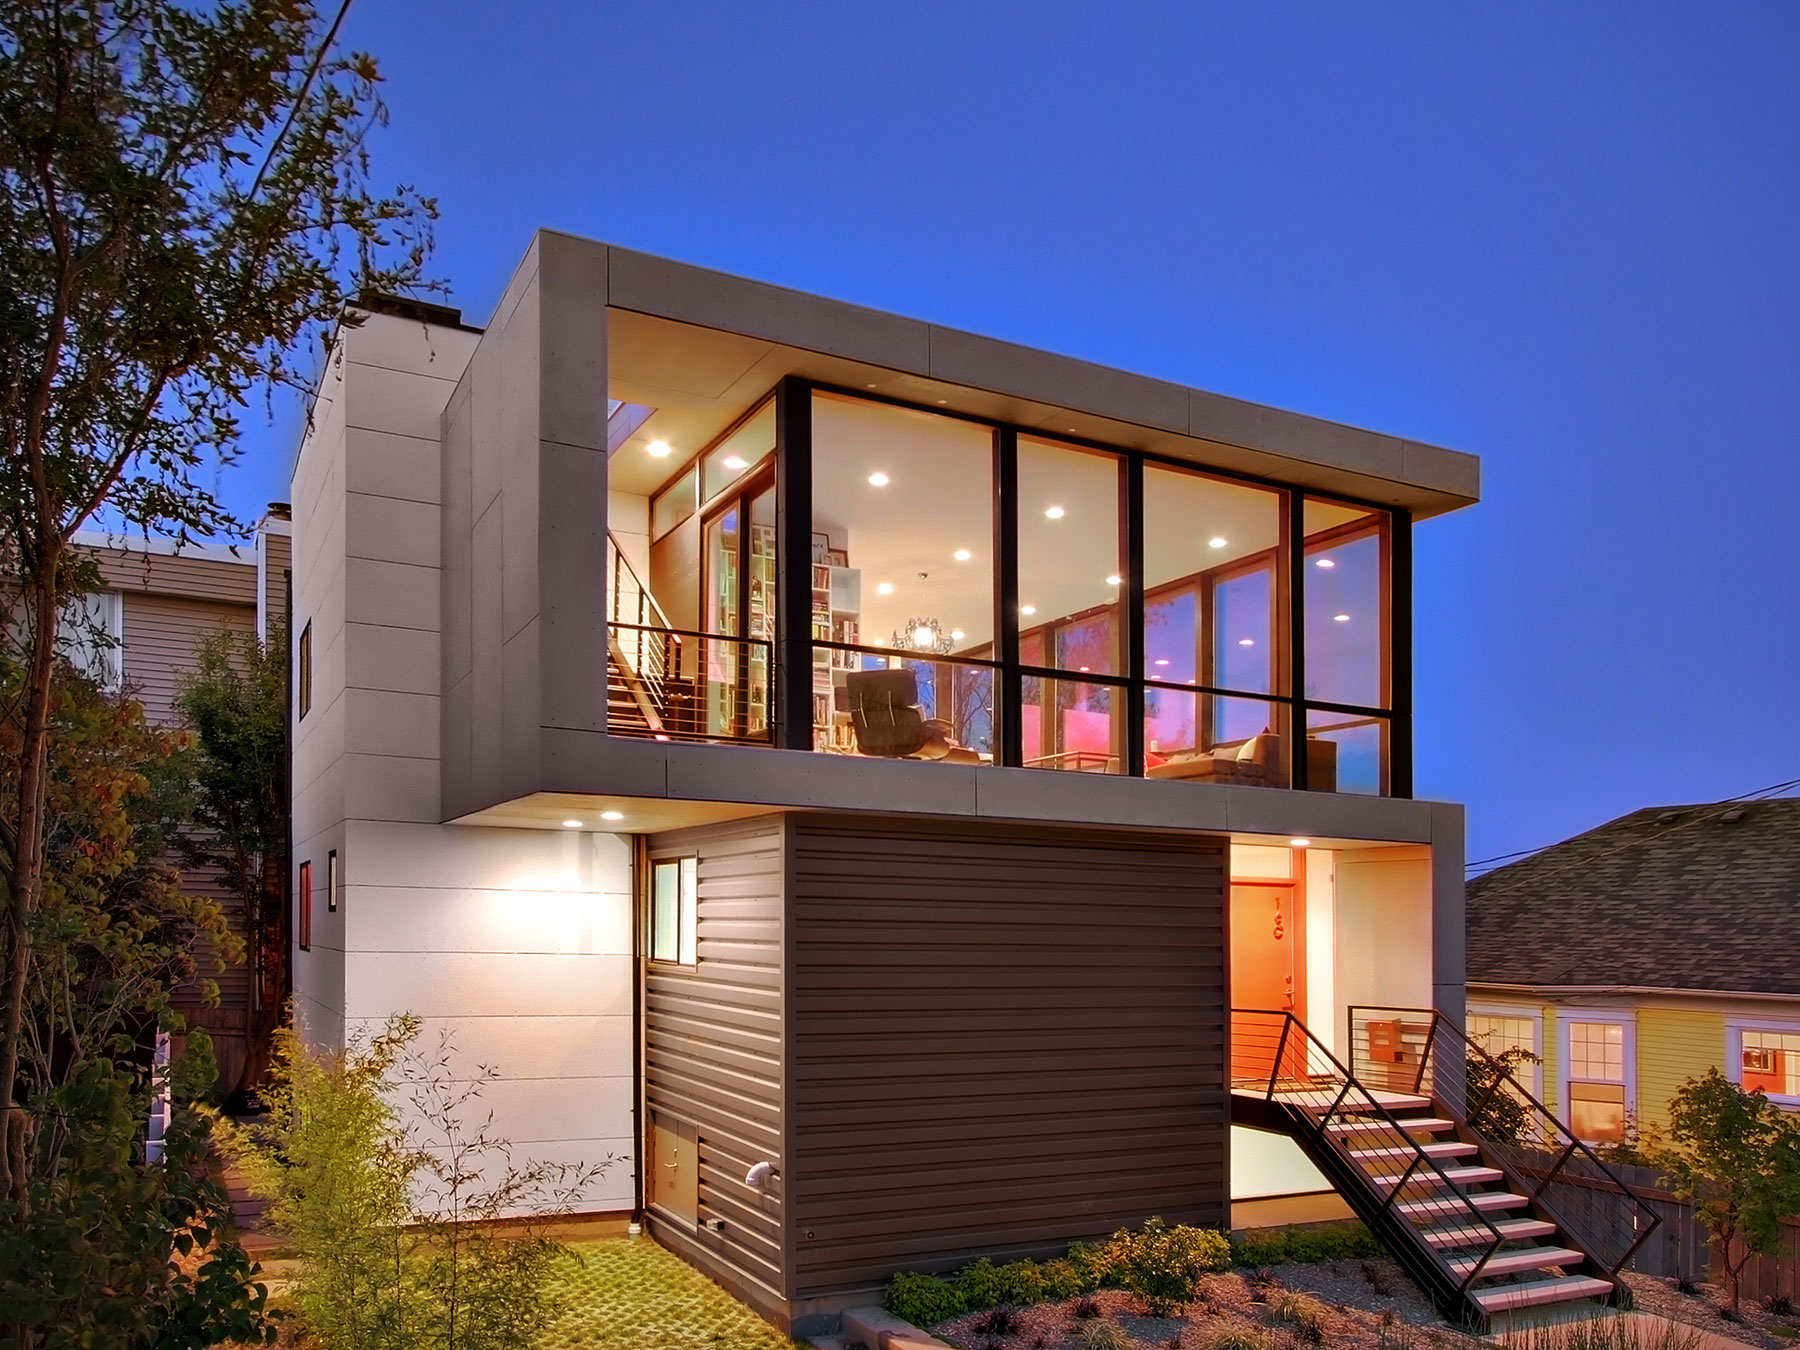 contemporary residence best minimalist home designs | Crocket Residence by Pb Elemental Architecture | Homedezen